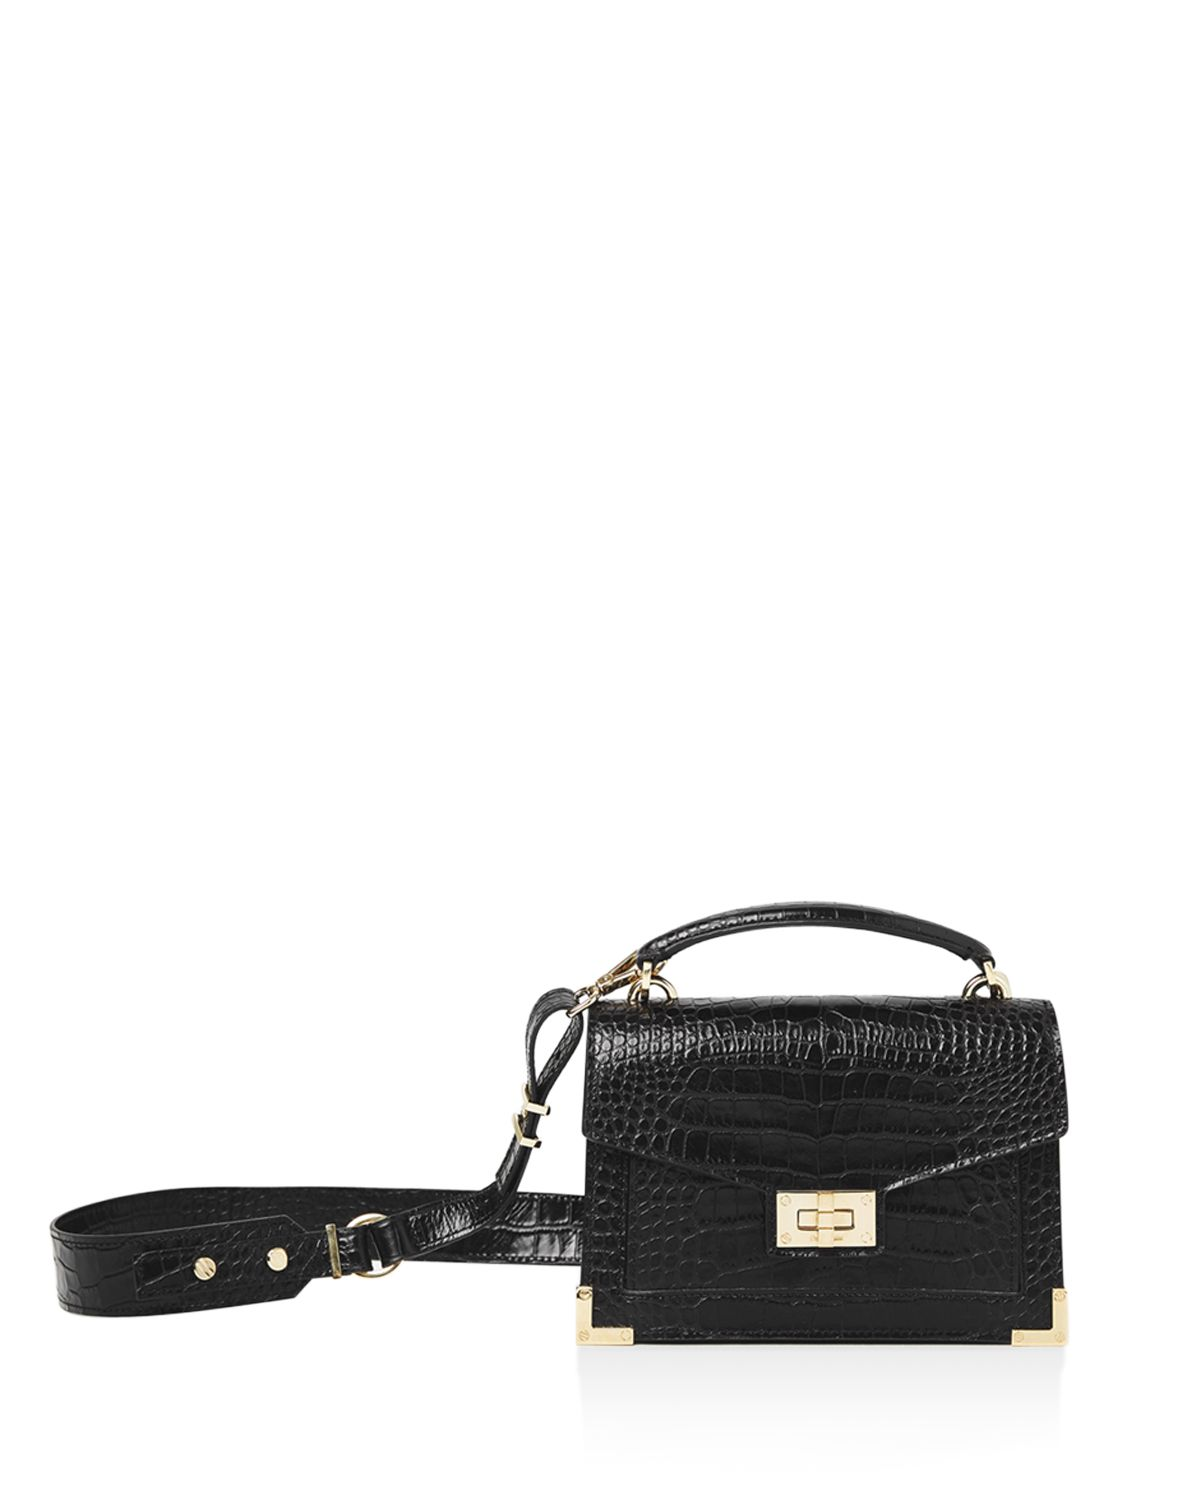 Emily Croc Embossed Leather Mini Crossbody by The Kooples